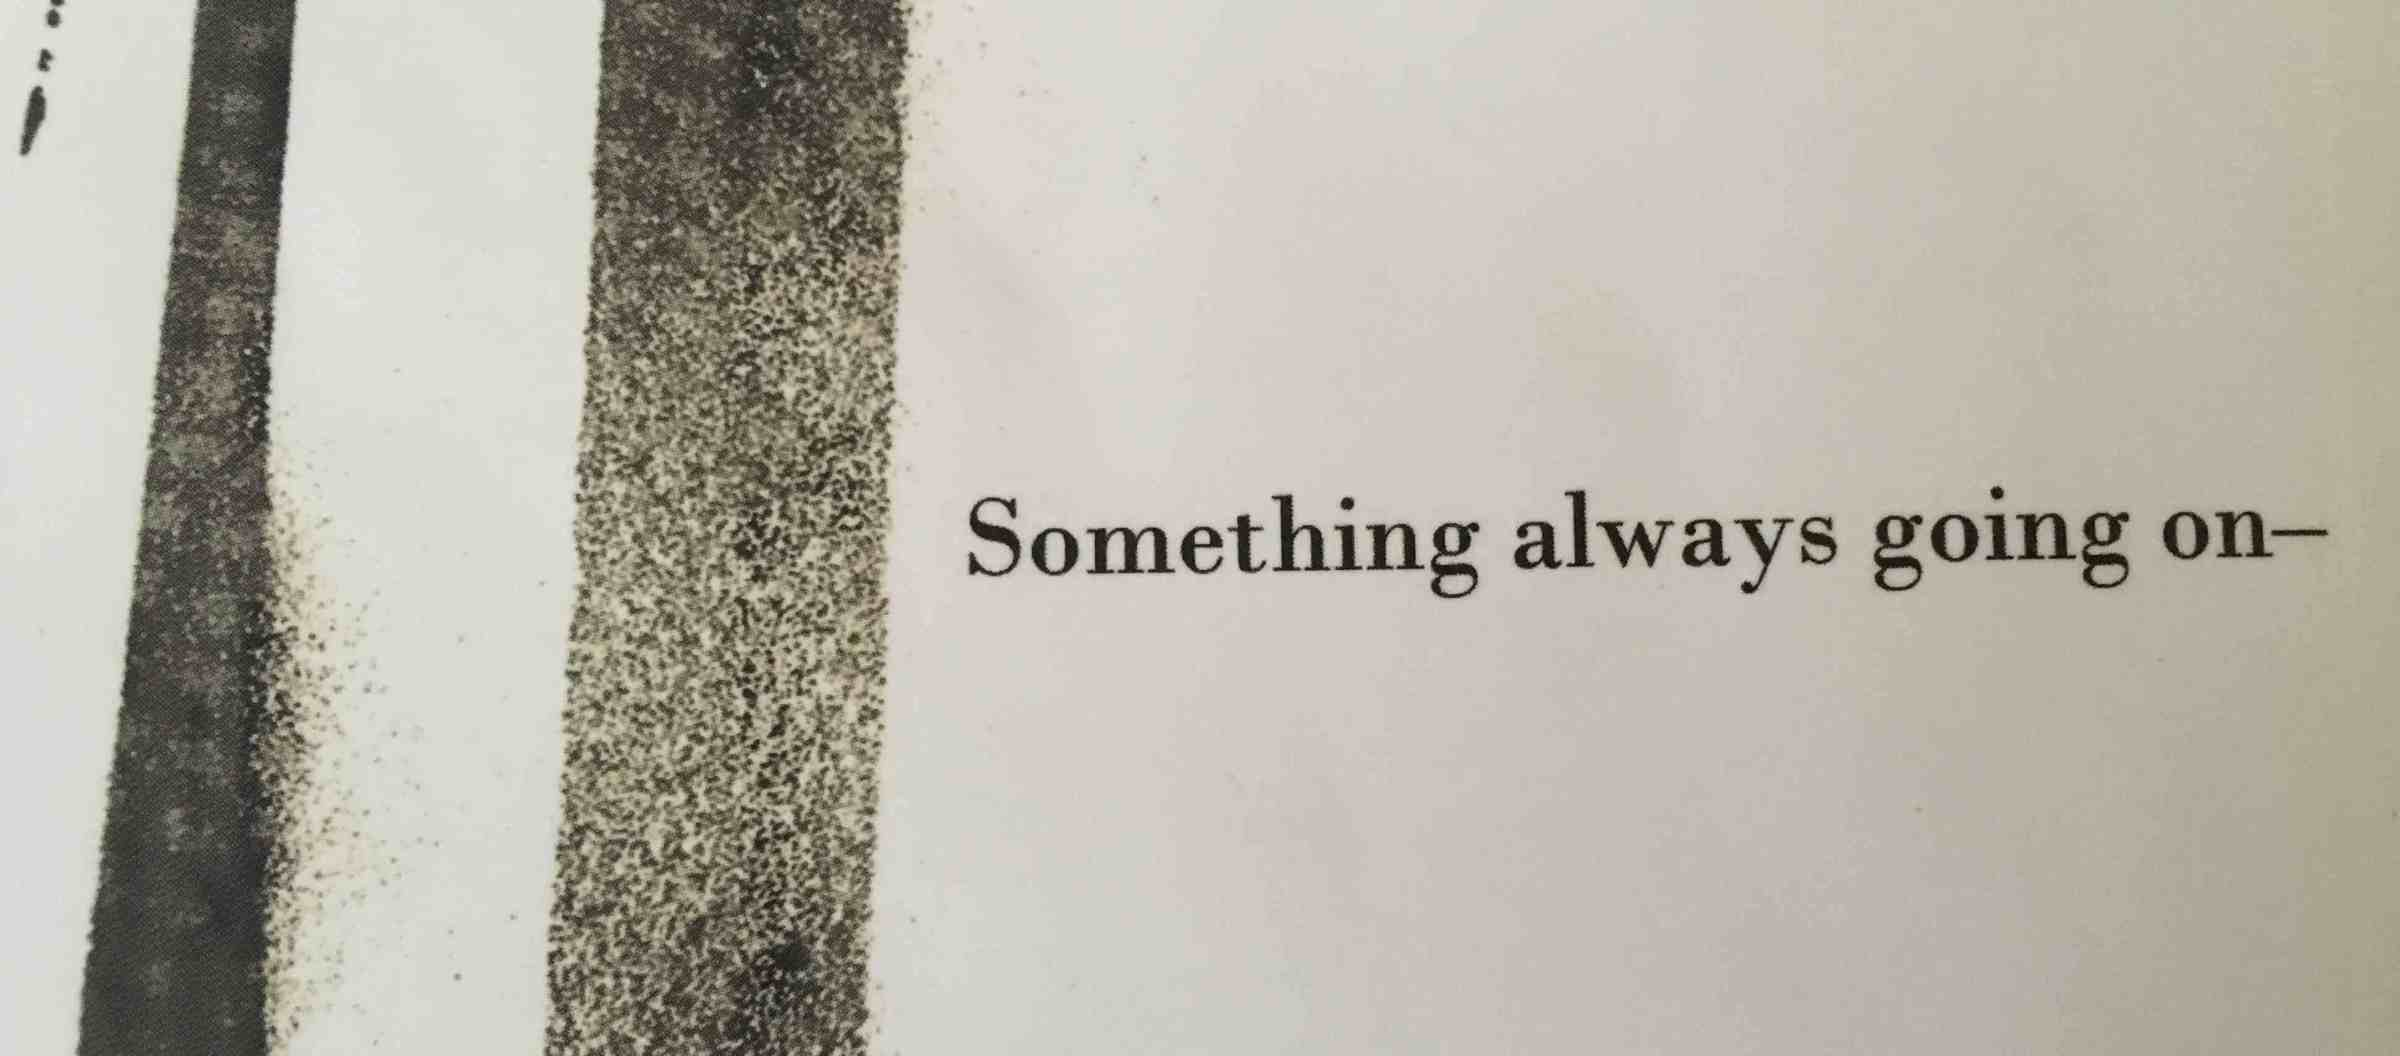 Something always going on—